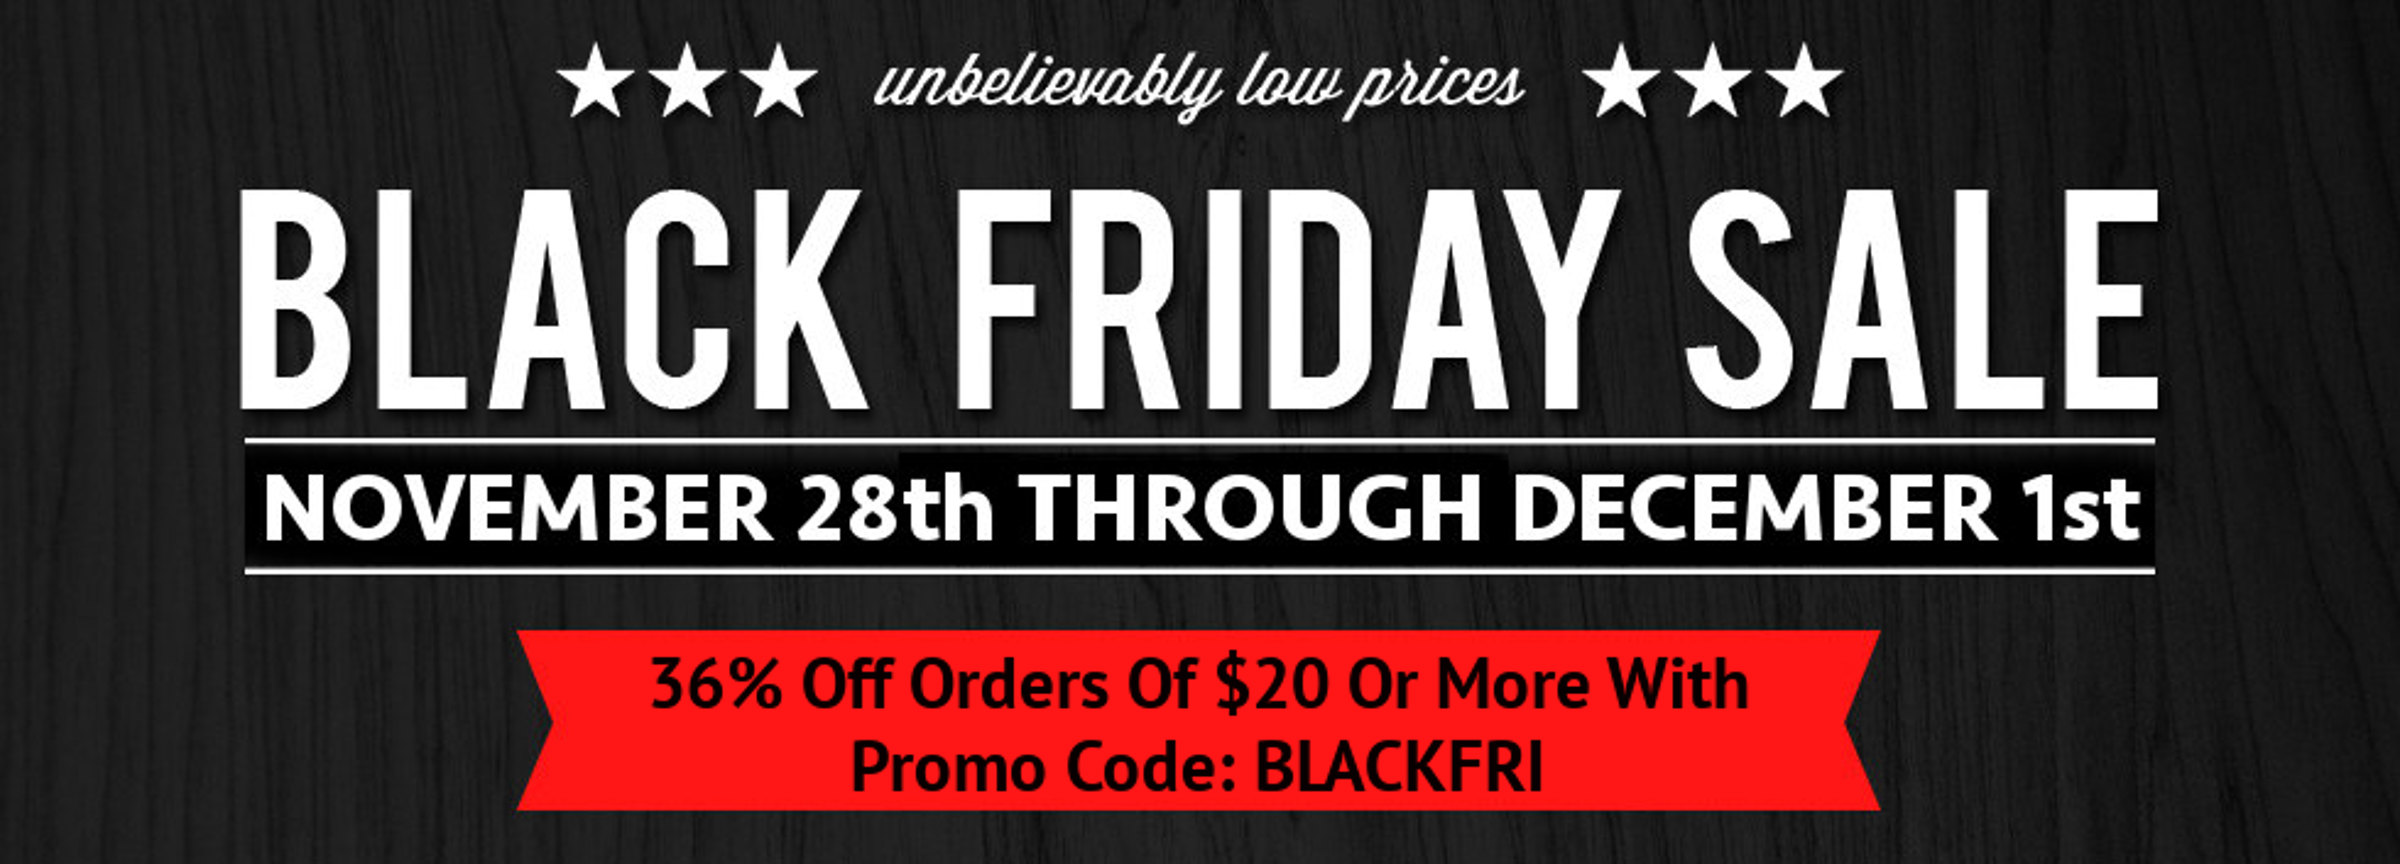 black-friday-sale-banner-2014.jpg